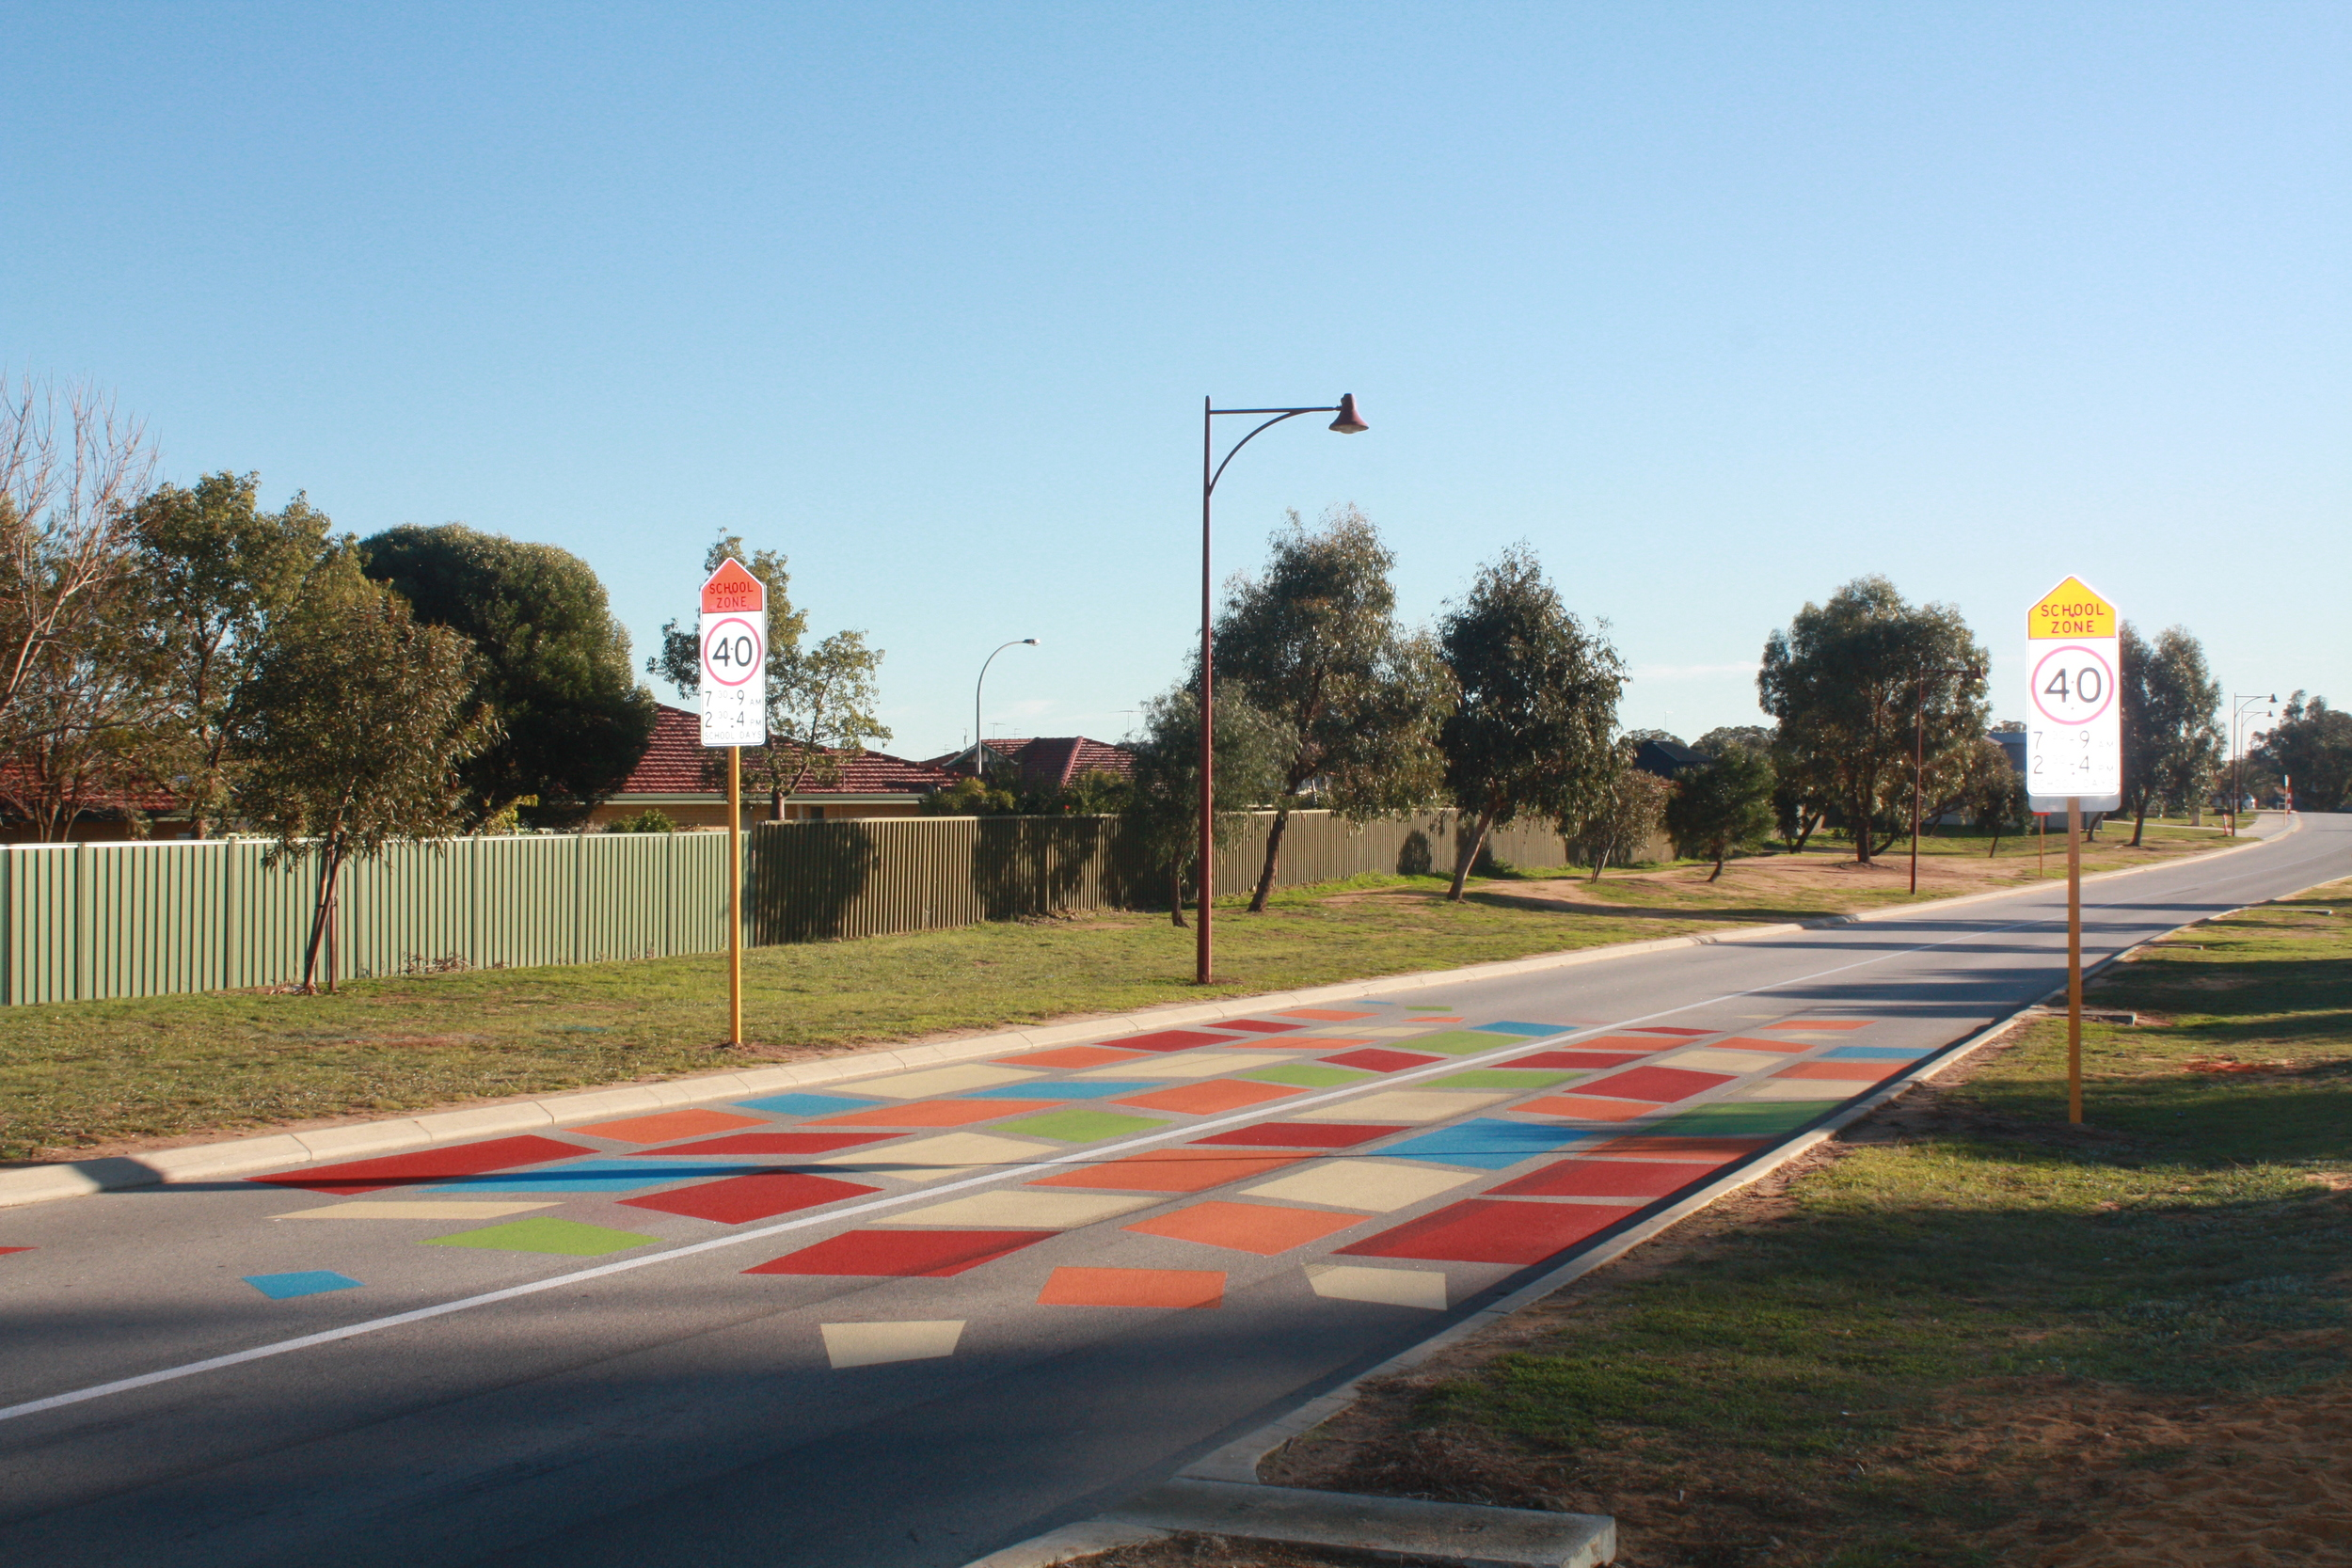 The city is trialling 'coloured shapes' on the road in Meadow Springs near the primary school